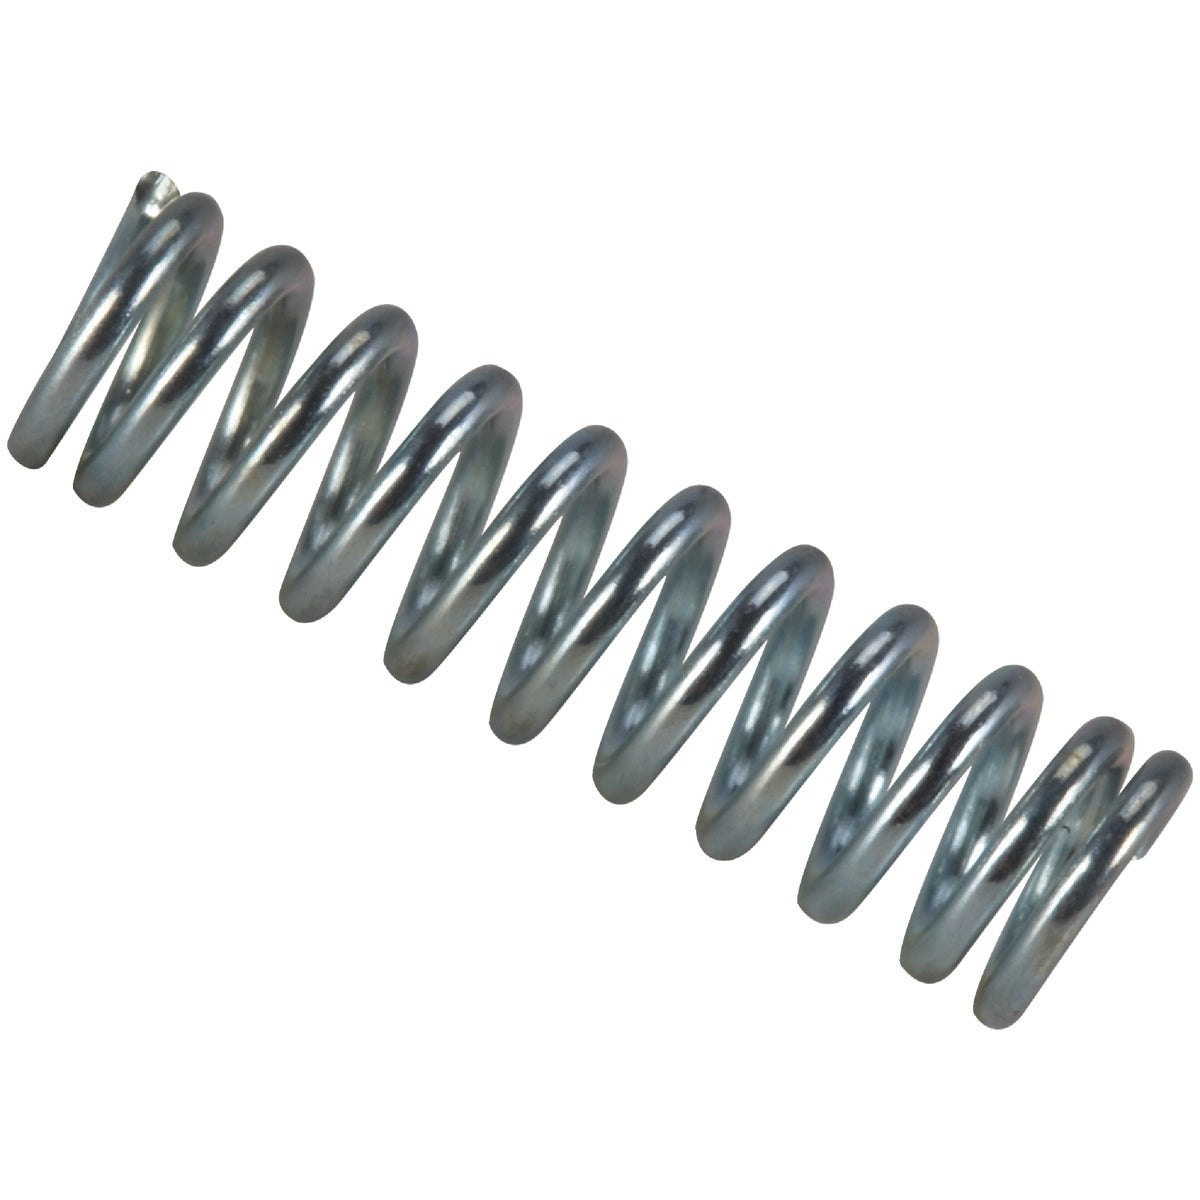 COMPRESSION SPRING - C-740 by Century Spring Corp